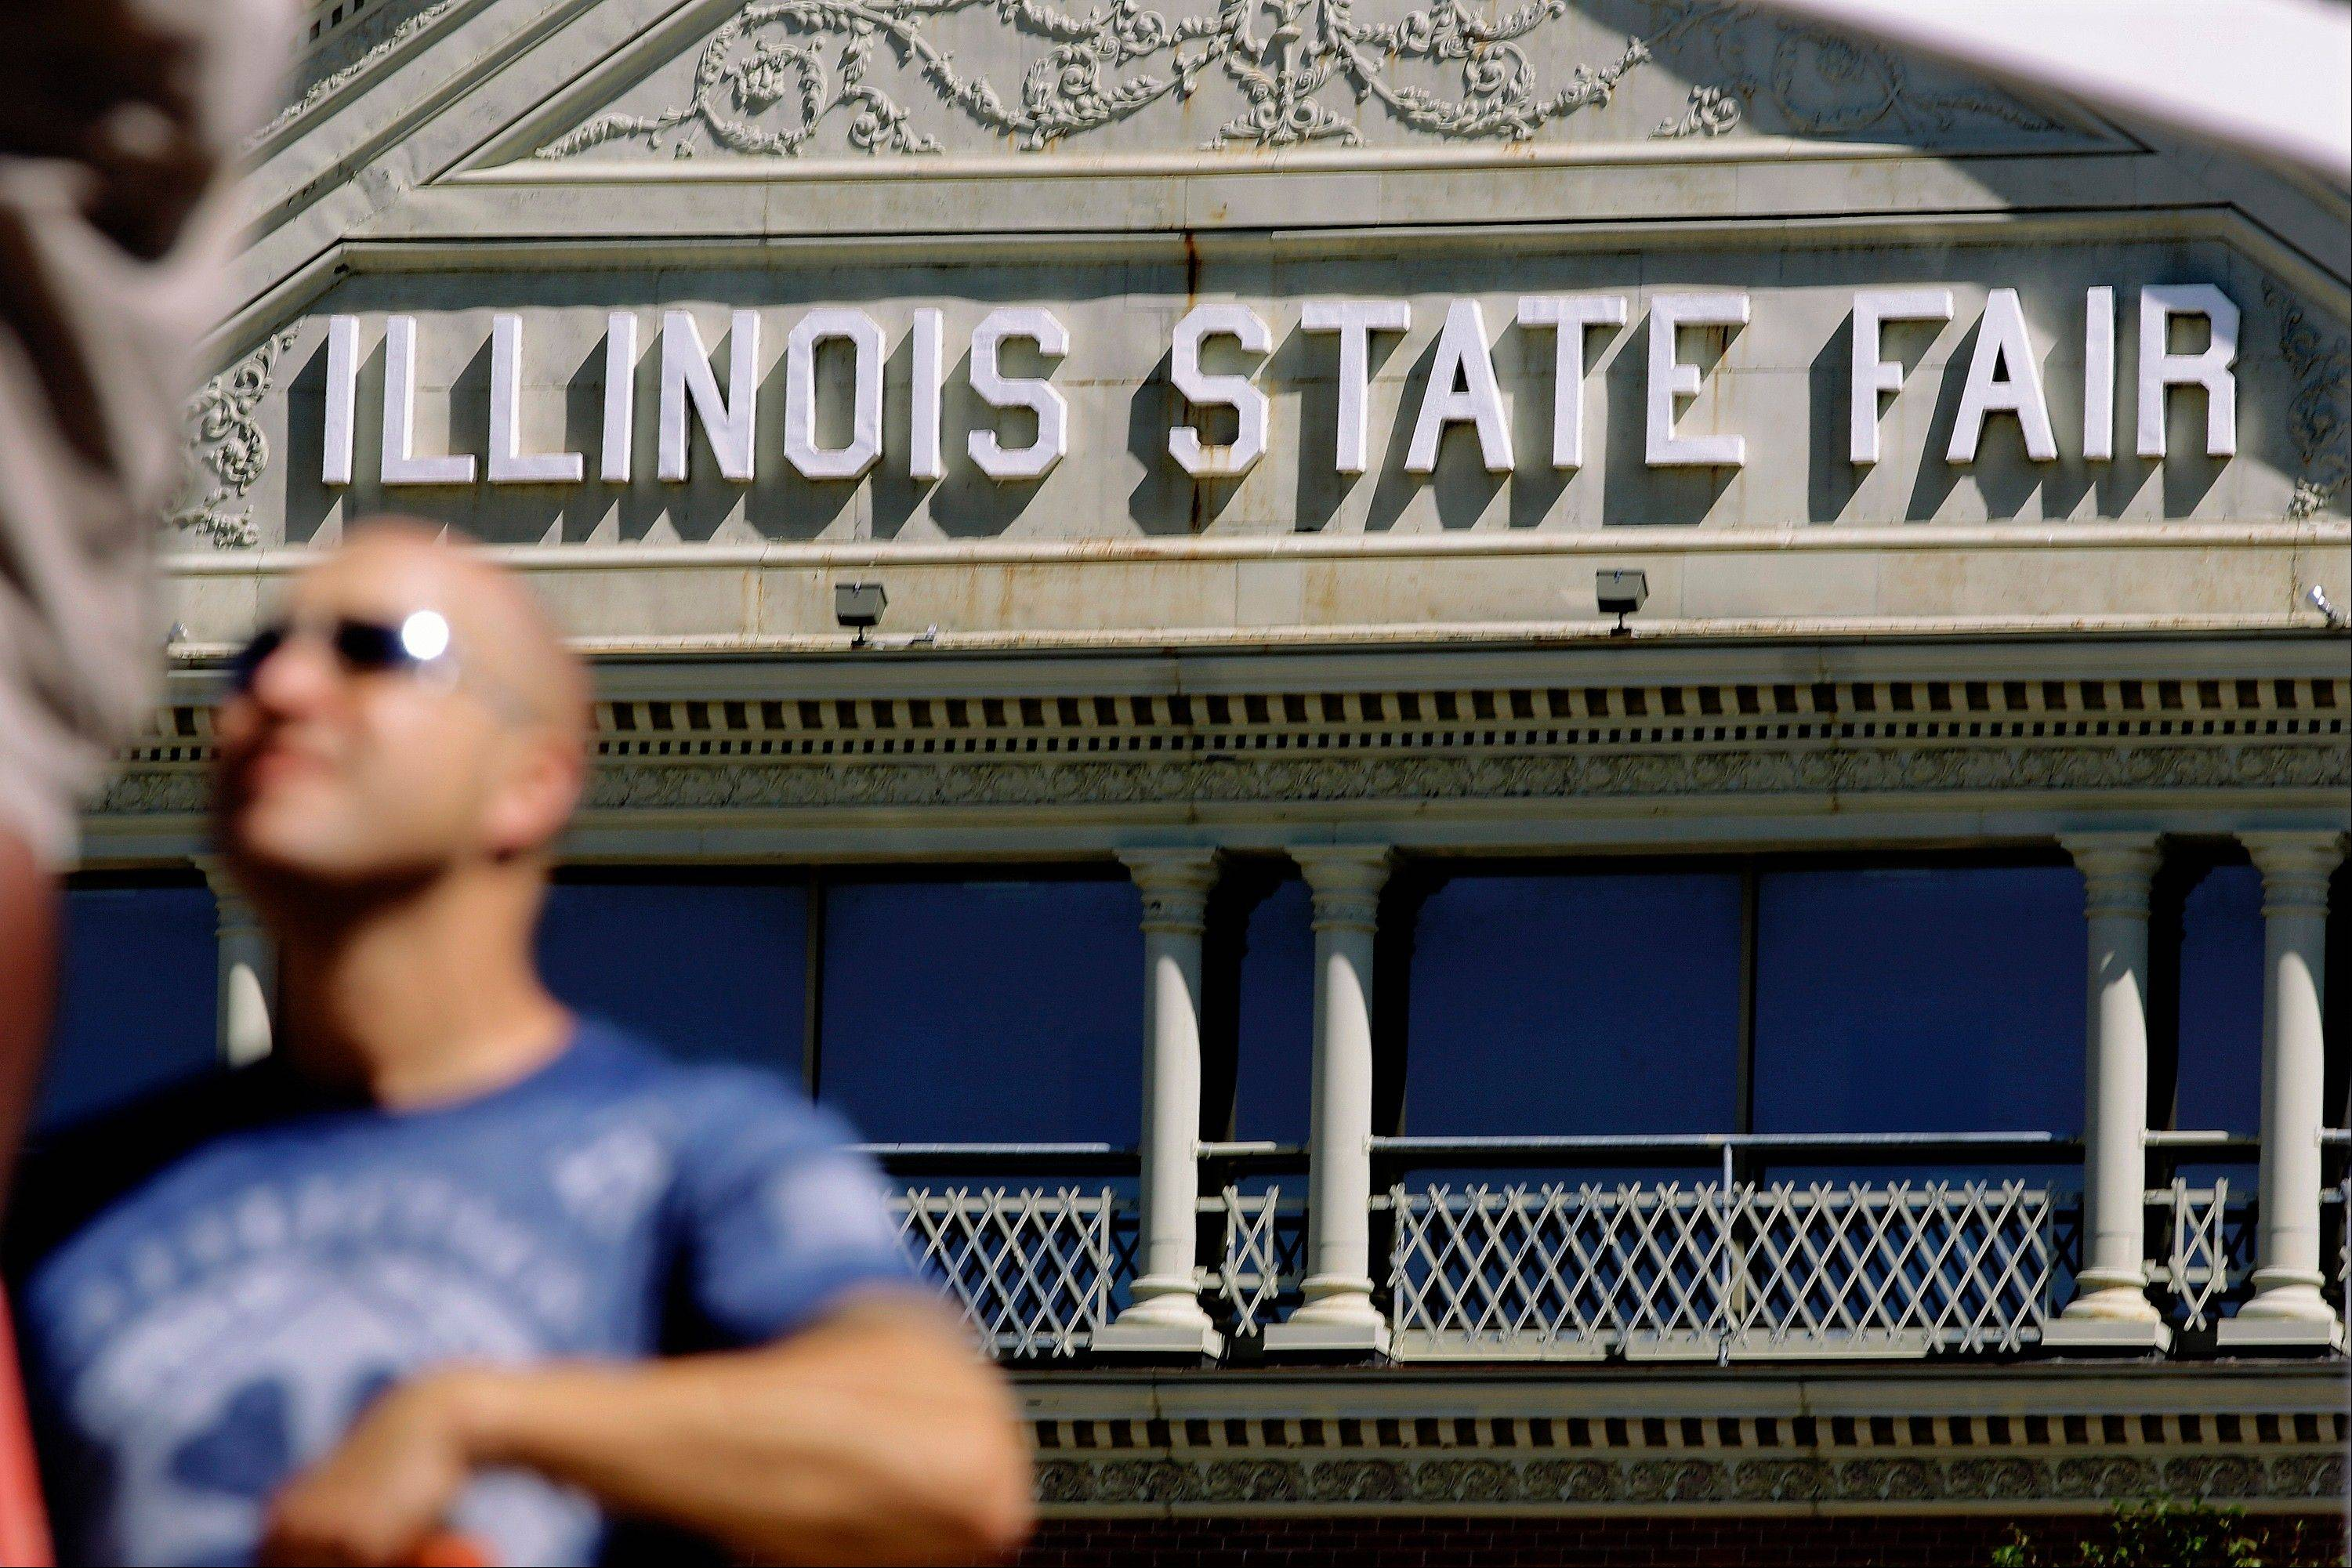 Contractor Bryon Tobin works on installing the Happy Hollow entrance sign at the Illinois State Fairgrounds Thursday in Springfield. The fair begins Aug. 8.